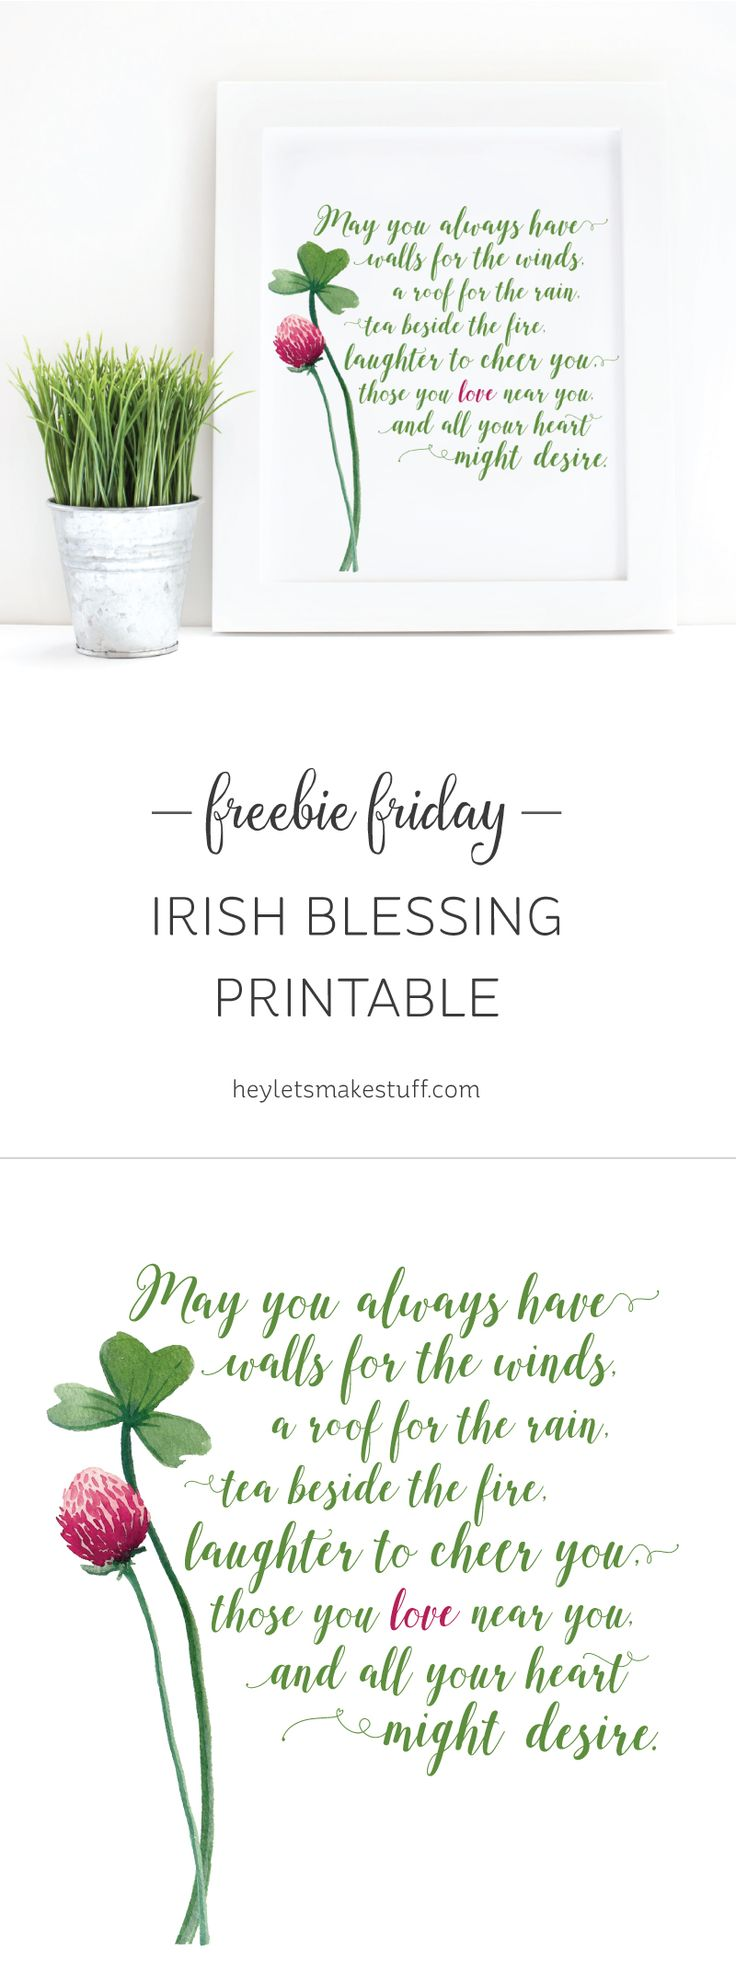 Print this Irish Blessing for St. Patrick's Day or any other time of the year when you need a reminder of the blessings in your life. Free printable!